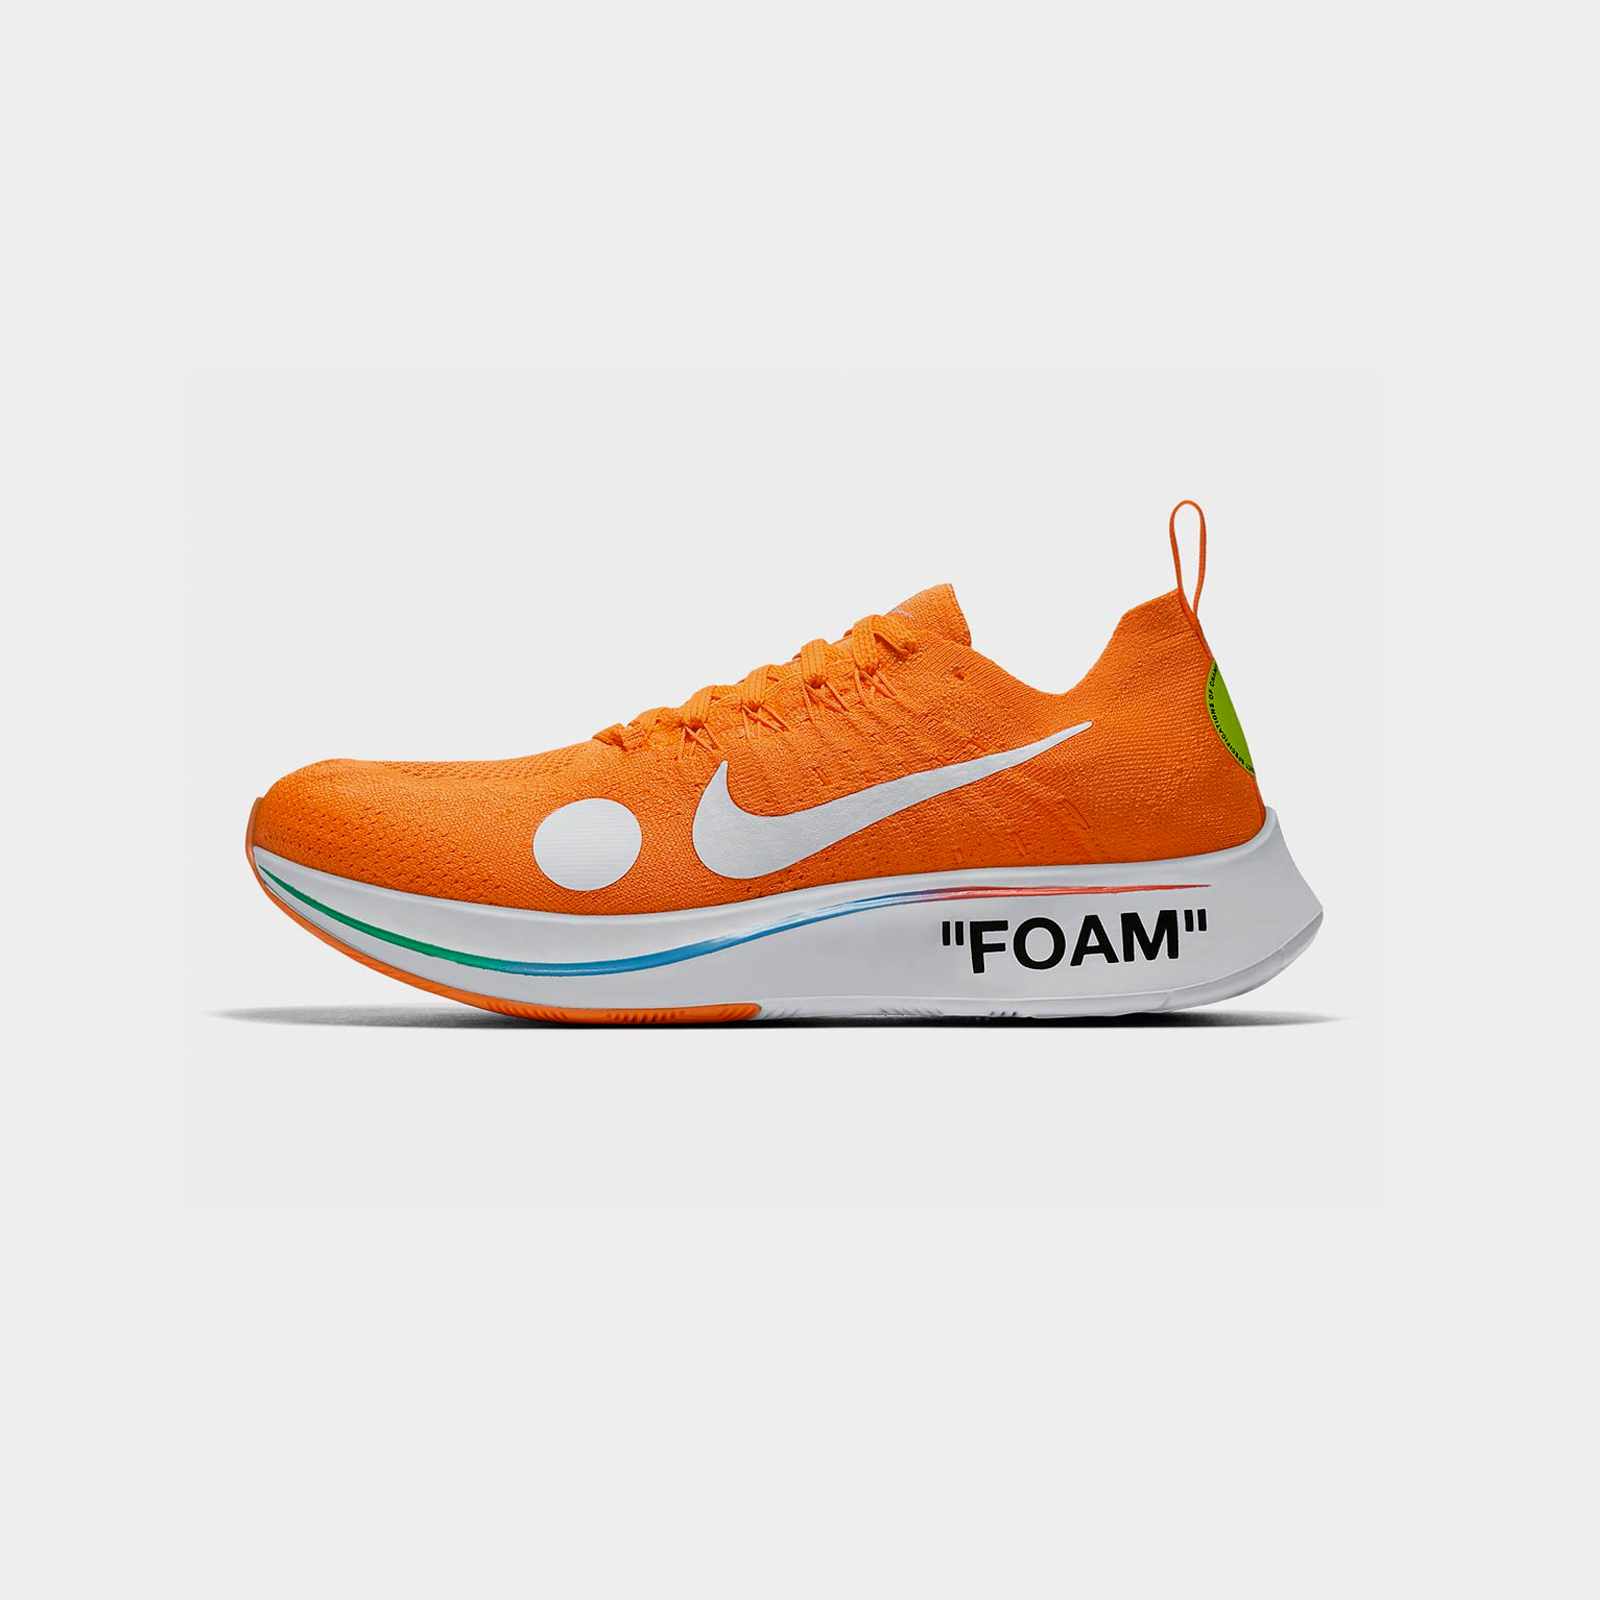 7fad3364866f Nike Zoom Fly Mercurial Flyknit   Off-White - Ao2115-800 ...